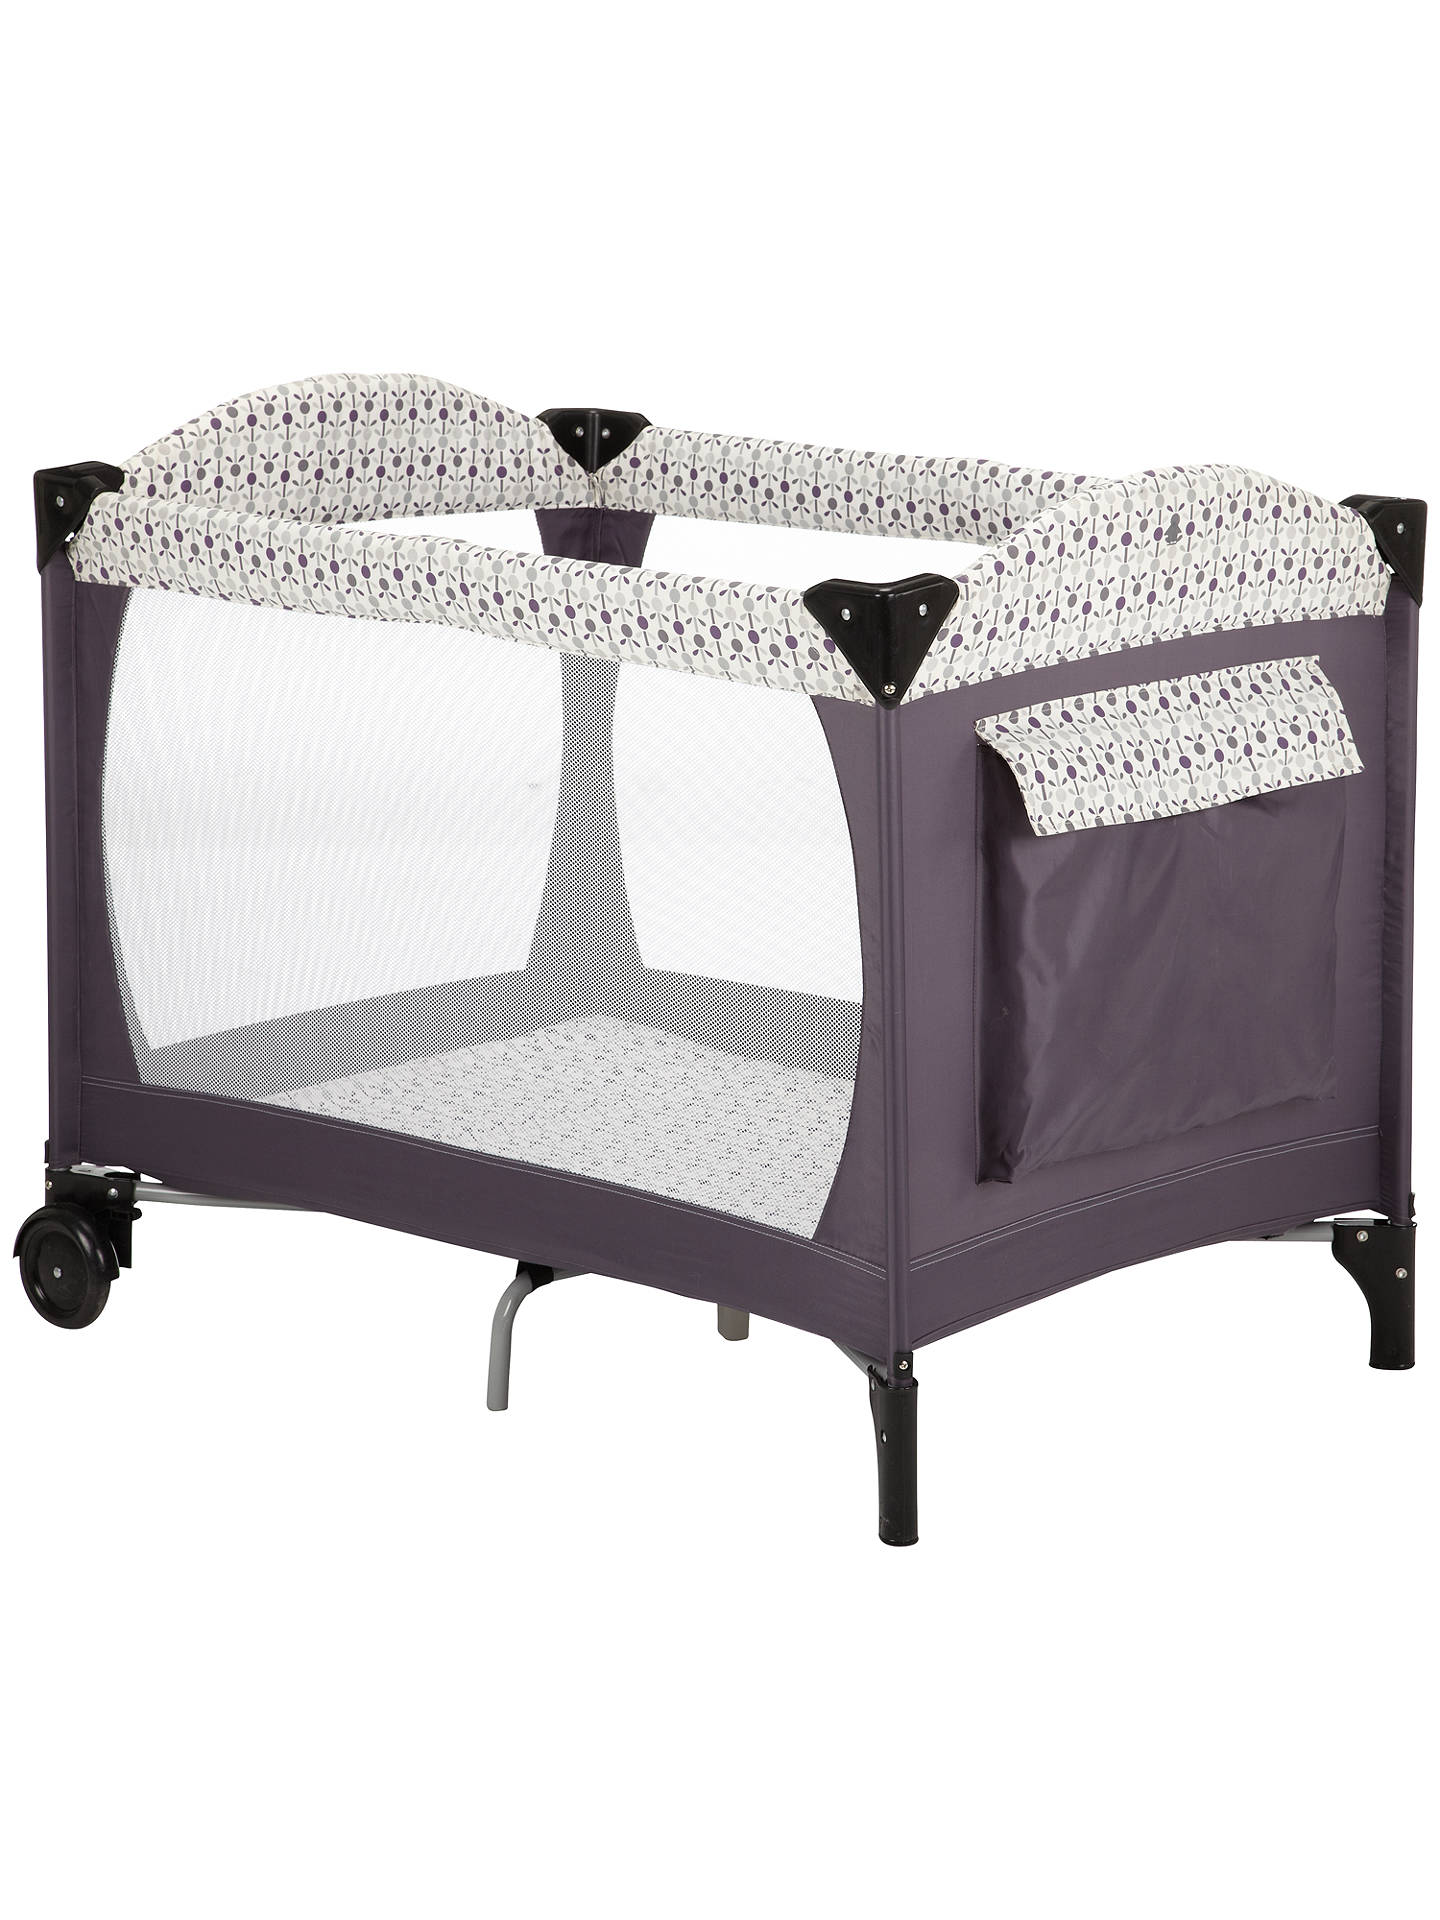 Buy John Lewis & Partners Travel Cot and Bassinette Online at johnlewis.com